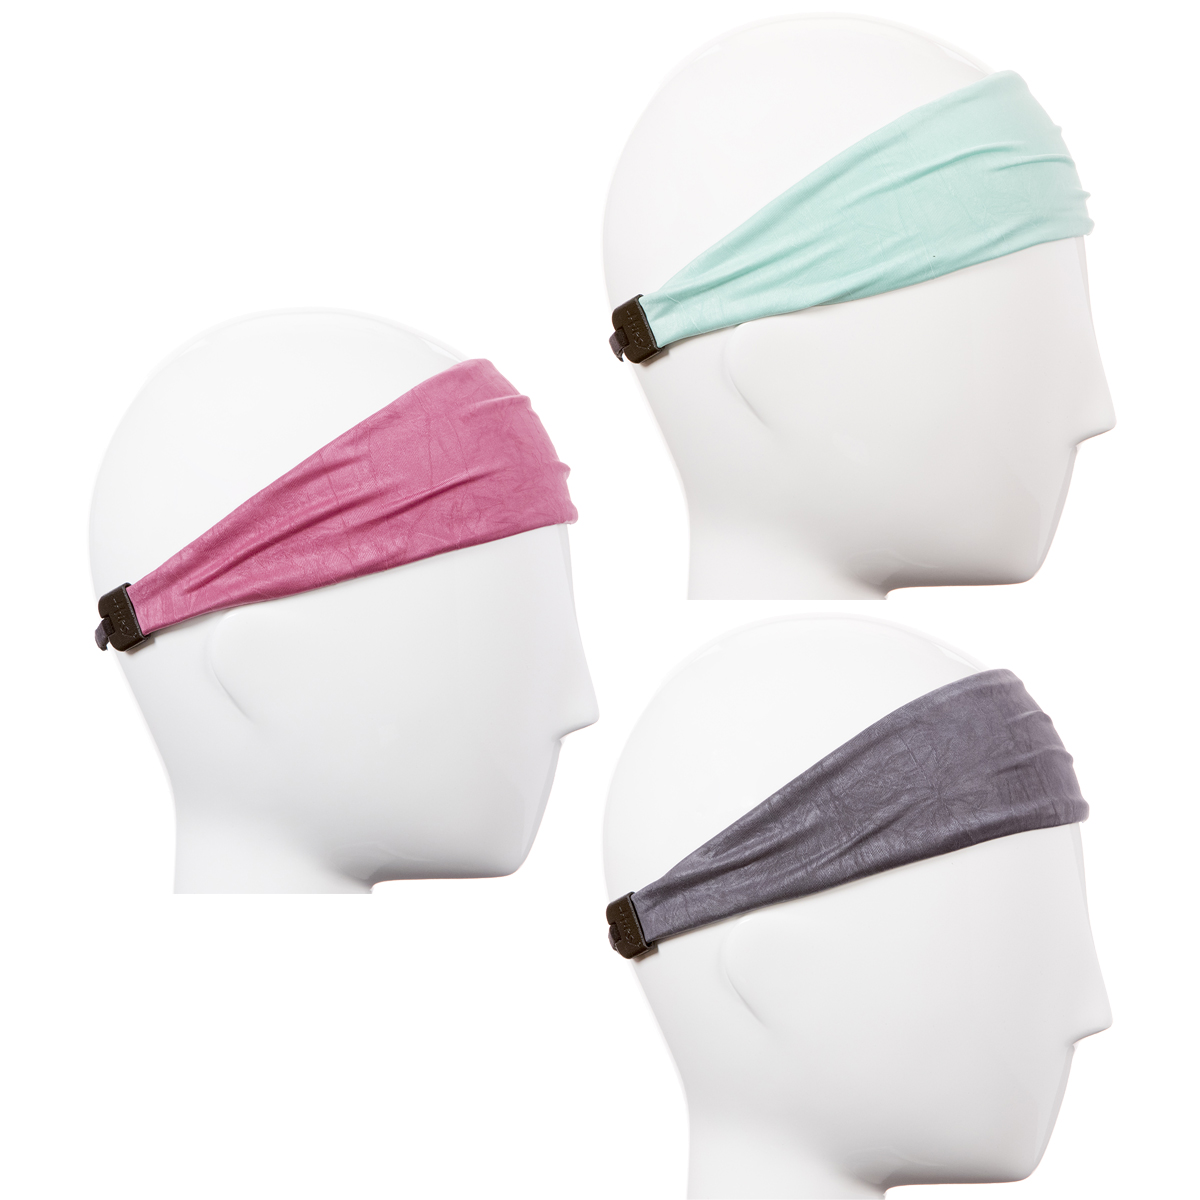 Hipsy Xflex Adjustable & Stretchy Sweat Sports Headbands for Women Gift Pack (Crushed Rose/Grey/Mint Xflex 3pk)